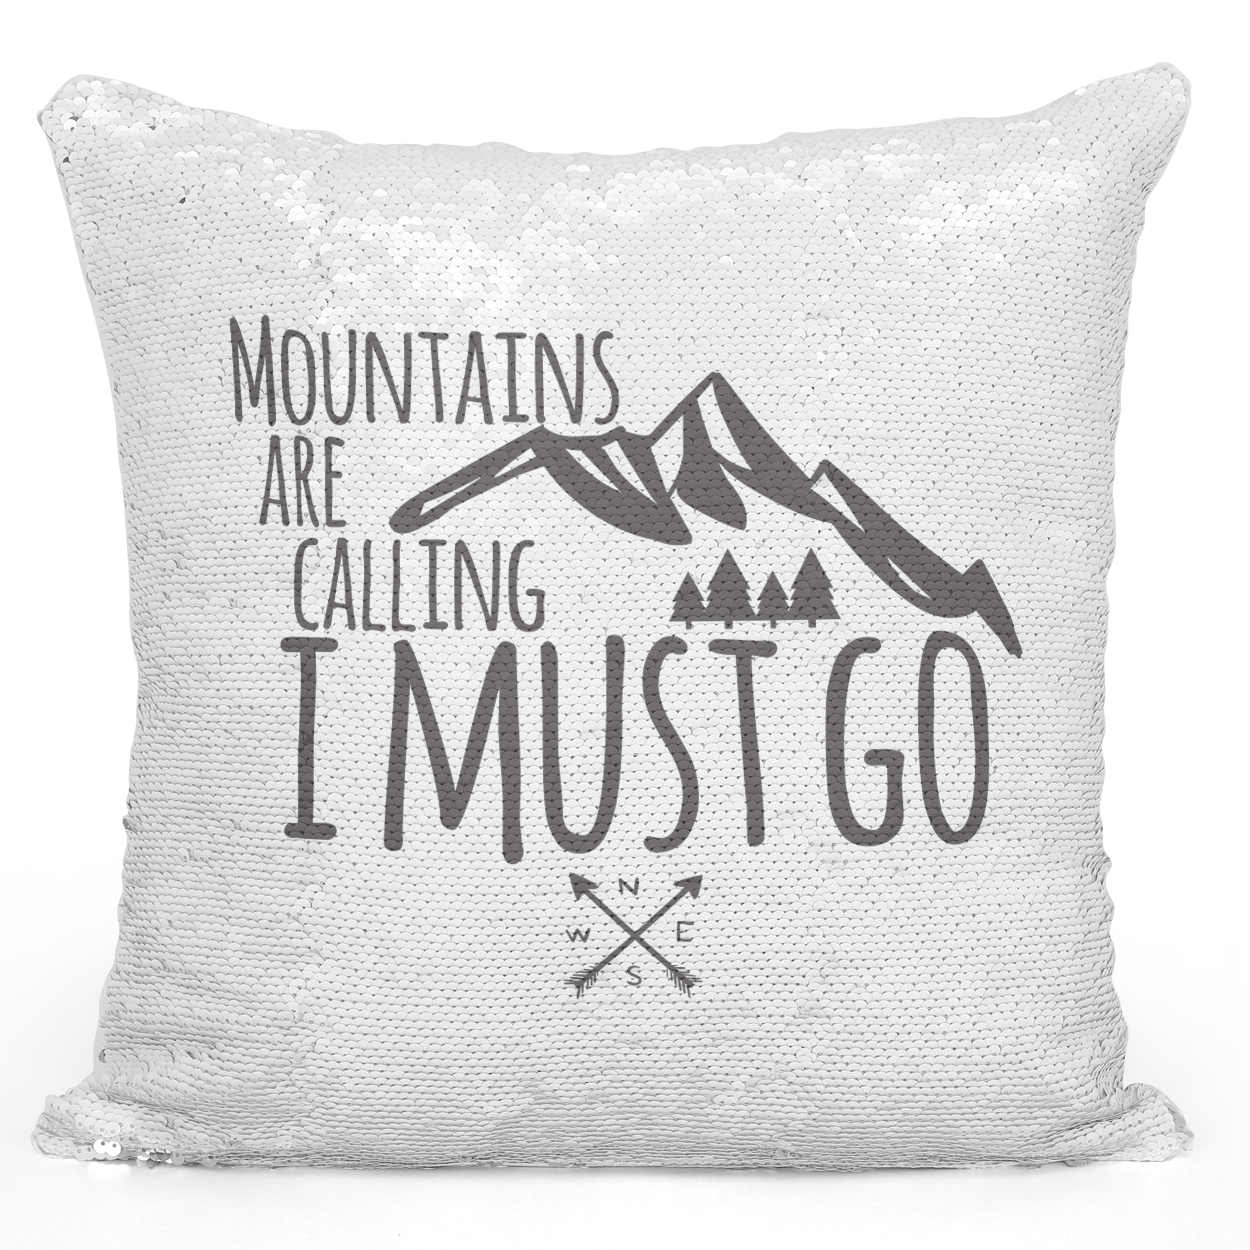 Sequin Pillow Magic Mermaid Throw Pillow Mountain Are Calling i Must Go Adventure Lovers Pillow - High Quality White 16 x 16 inch Square Home Office Decor Accent Pillow Loud Universe